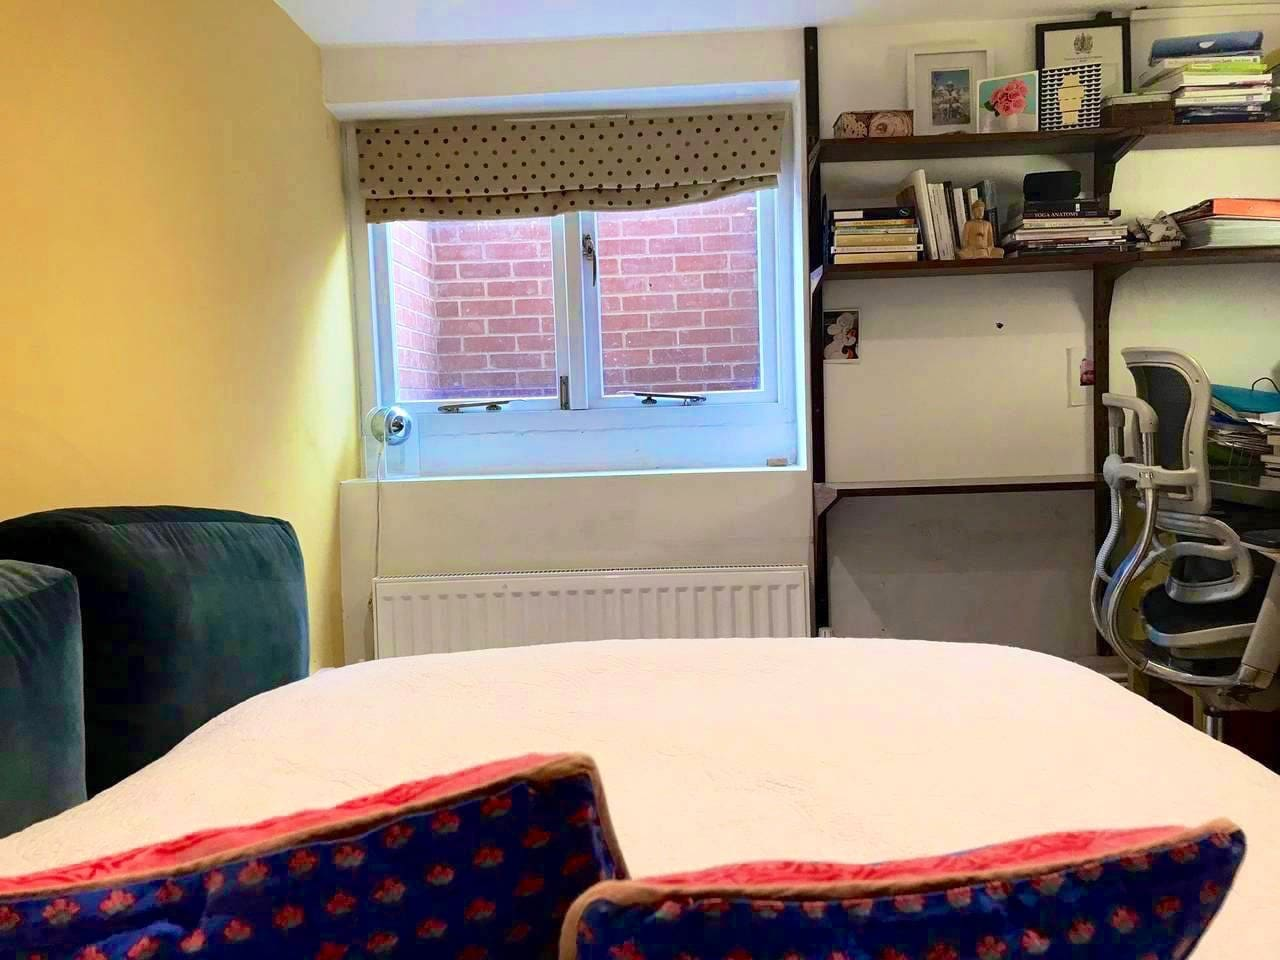 From the bed, 'view' is of egress window, and the desk. The room doubles as a study, so there are yoga and midwifery books and items stored on one side of the room and under the stairs, and a computer (not switched on) in the space.